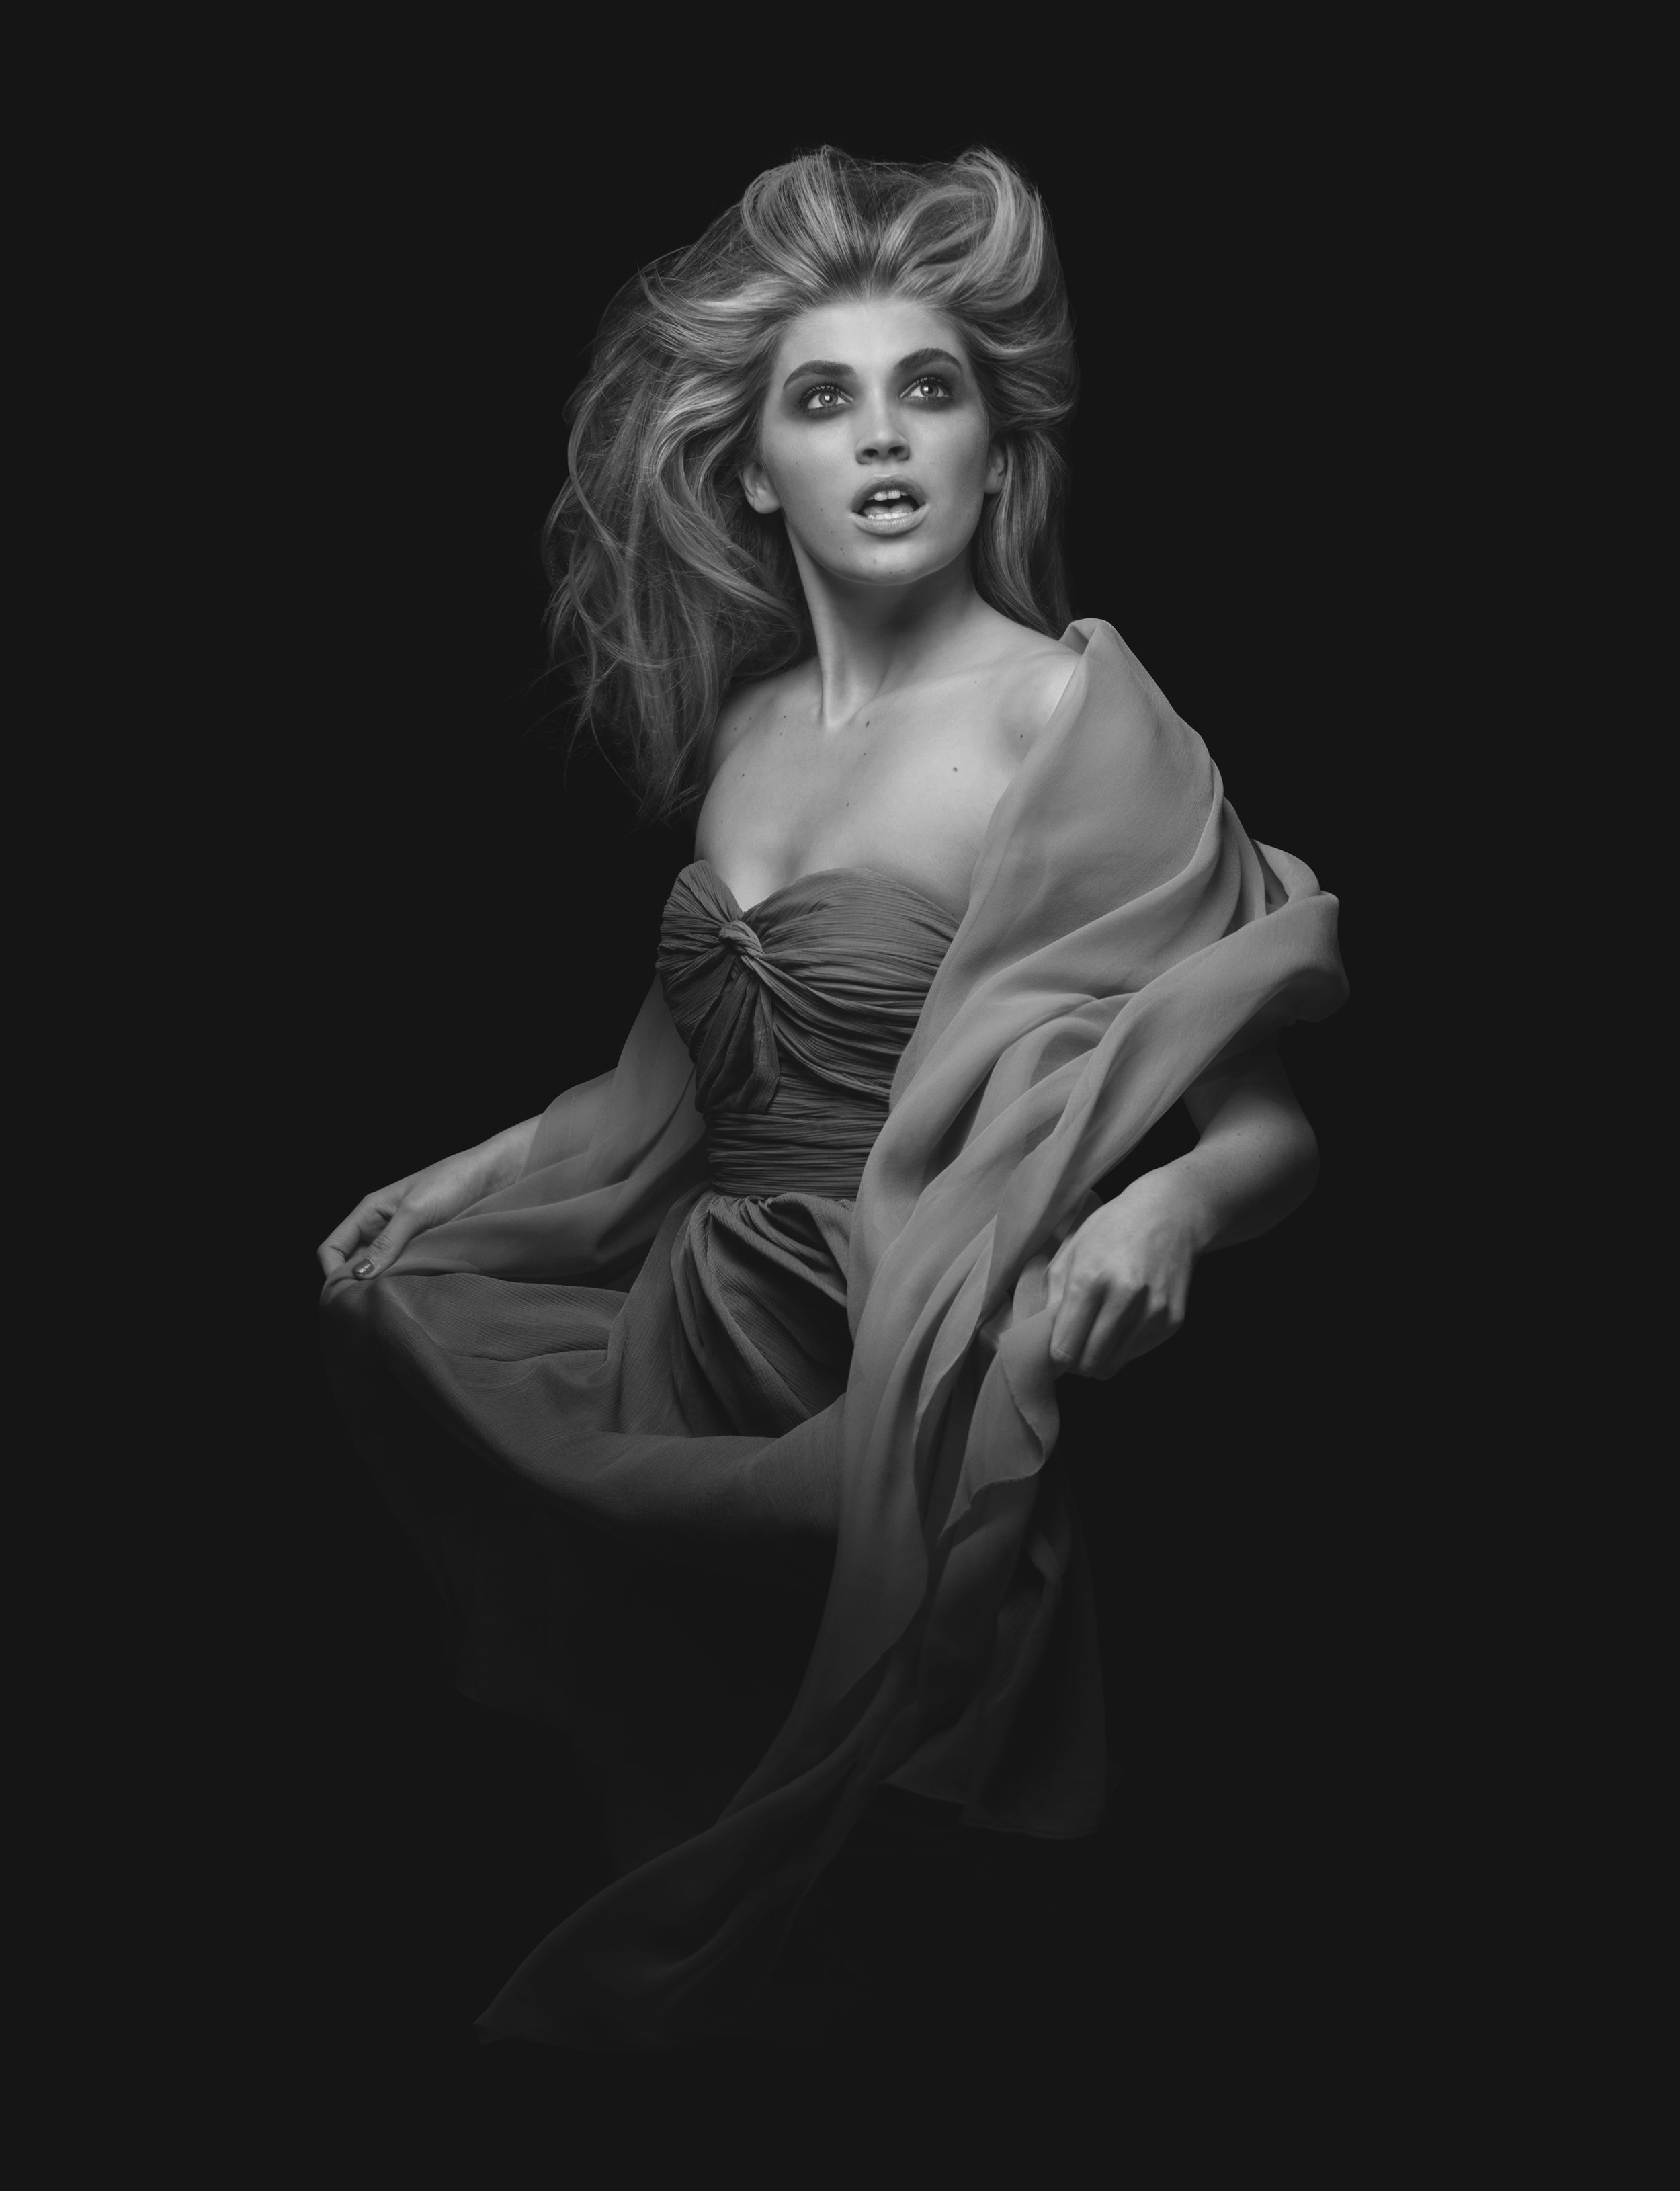 Female model with cosmetic makeup, wind blown hair, gown and shawl black and white studio fashion portrait retouching